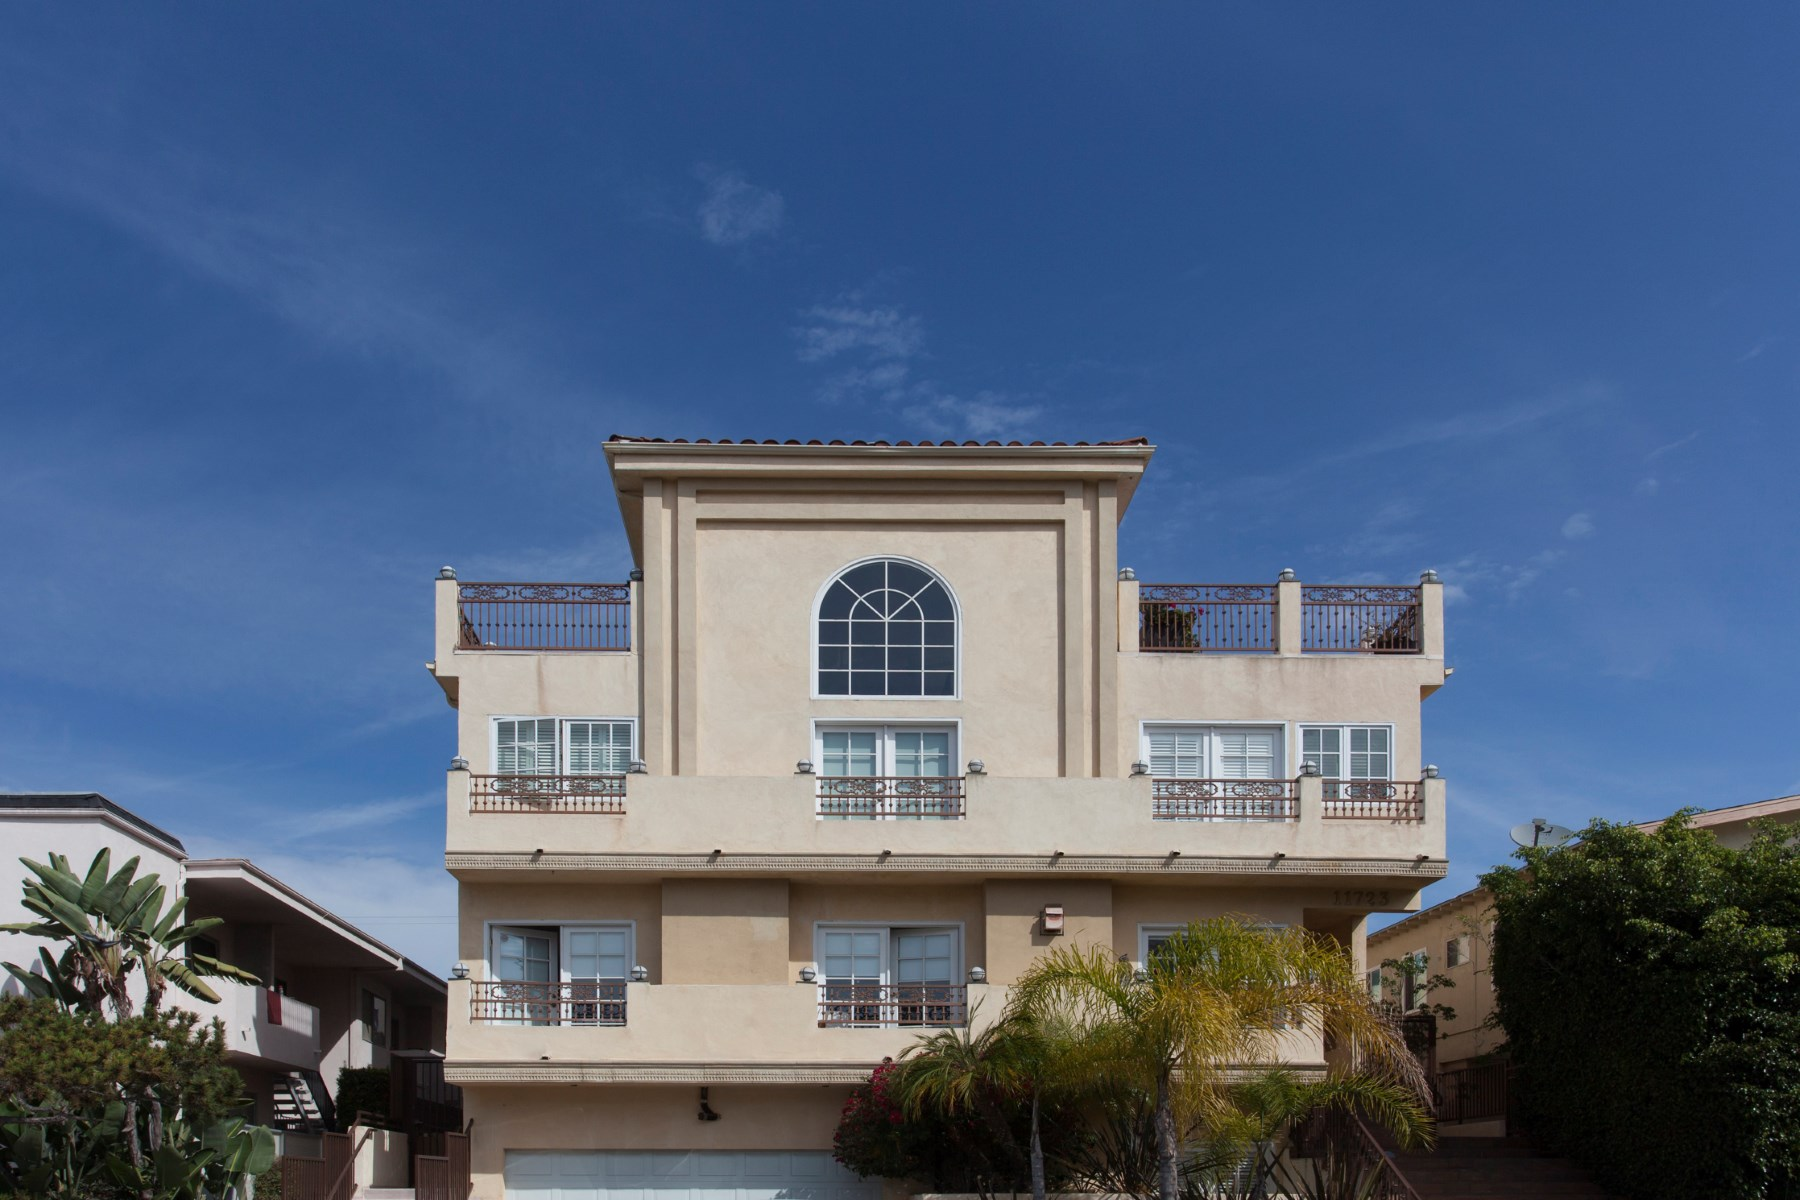 """Townhouse for Sale at Wander Brentwood's """"Village"""" Lifestyle 11723 Mayfield Ave #3 Brentwood, Los Angeles, California 90049 United States"""